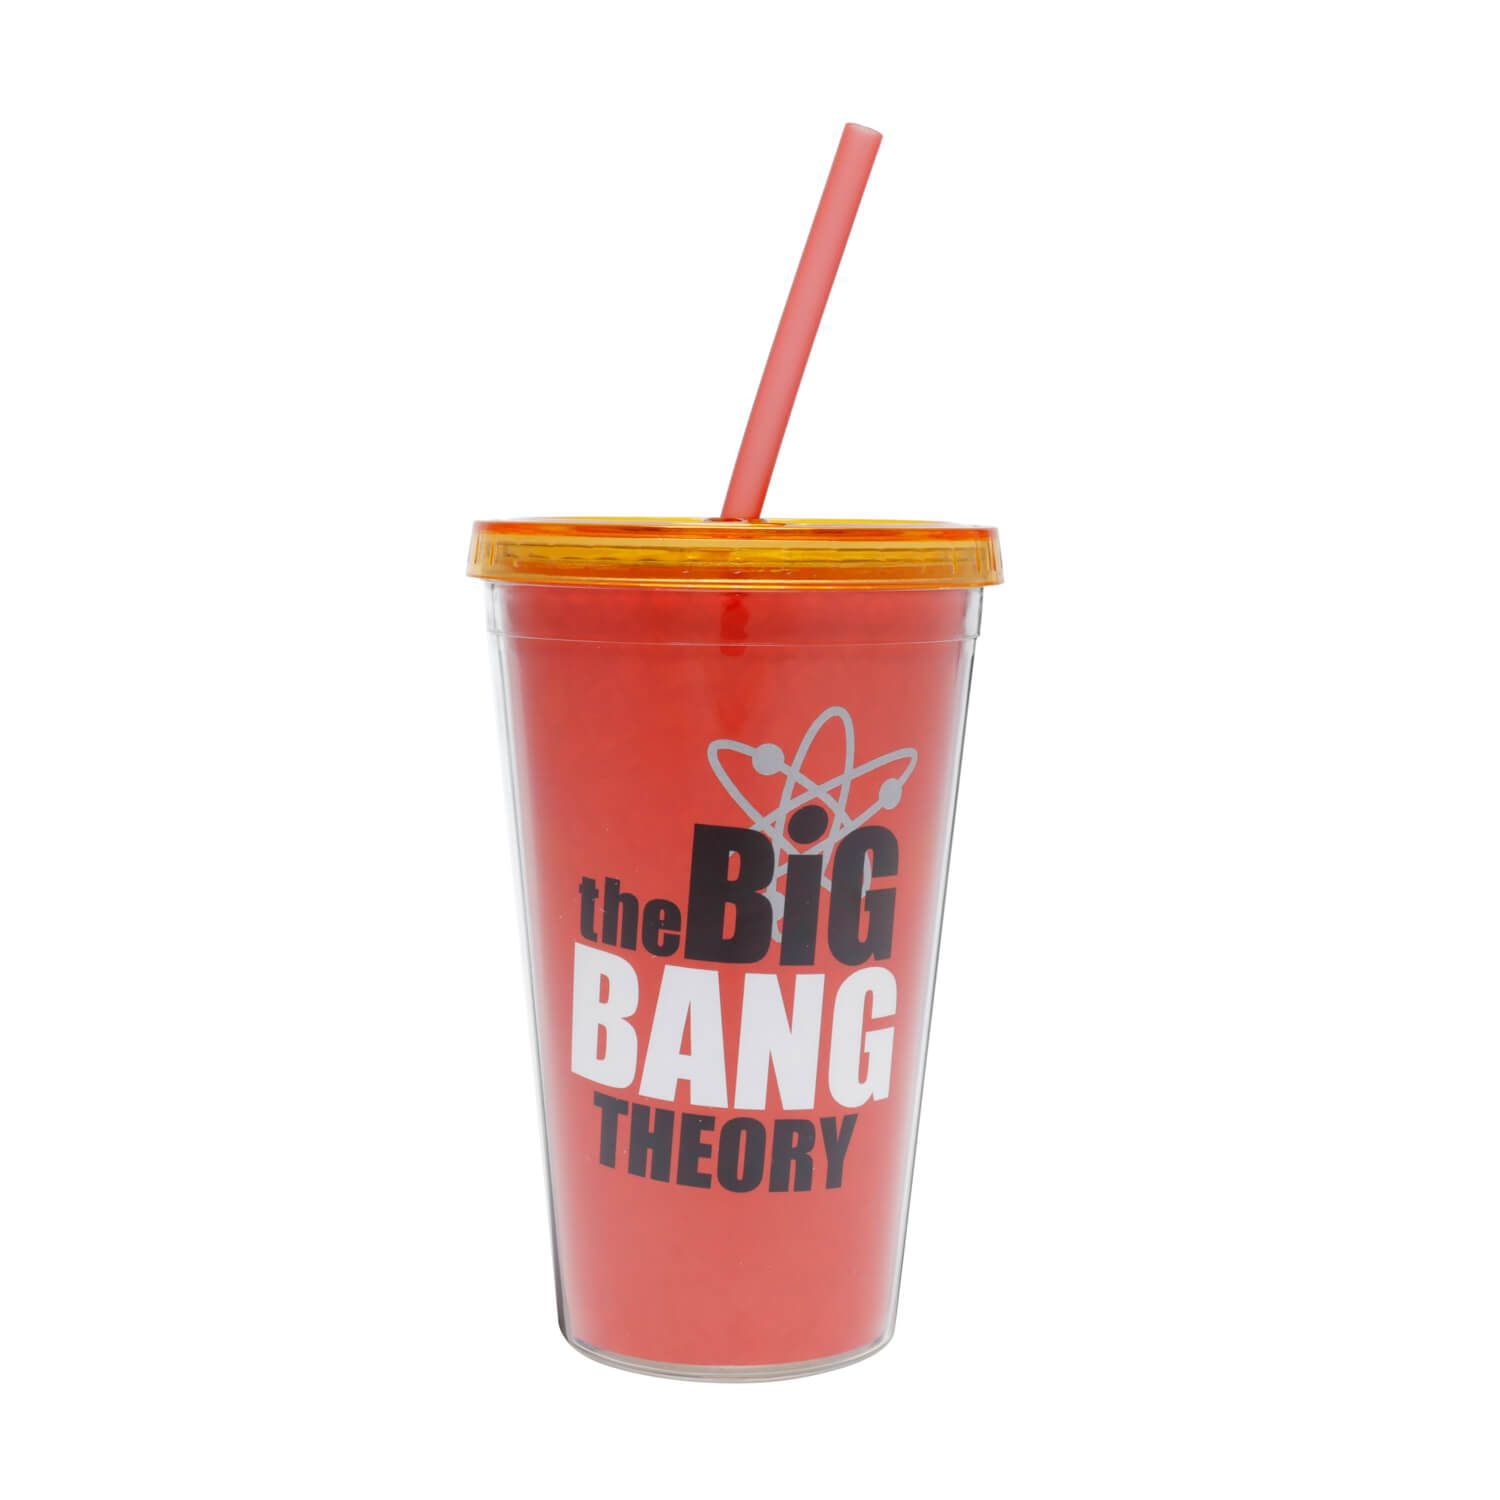 Copo Canudo Plástico Bazinga The Big Bang Theory 500ml